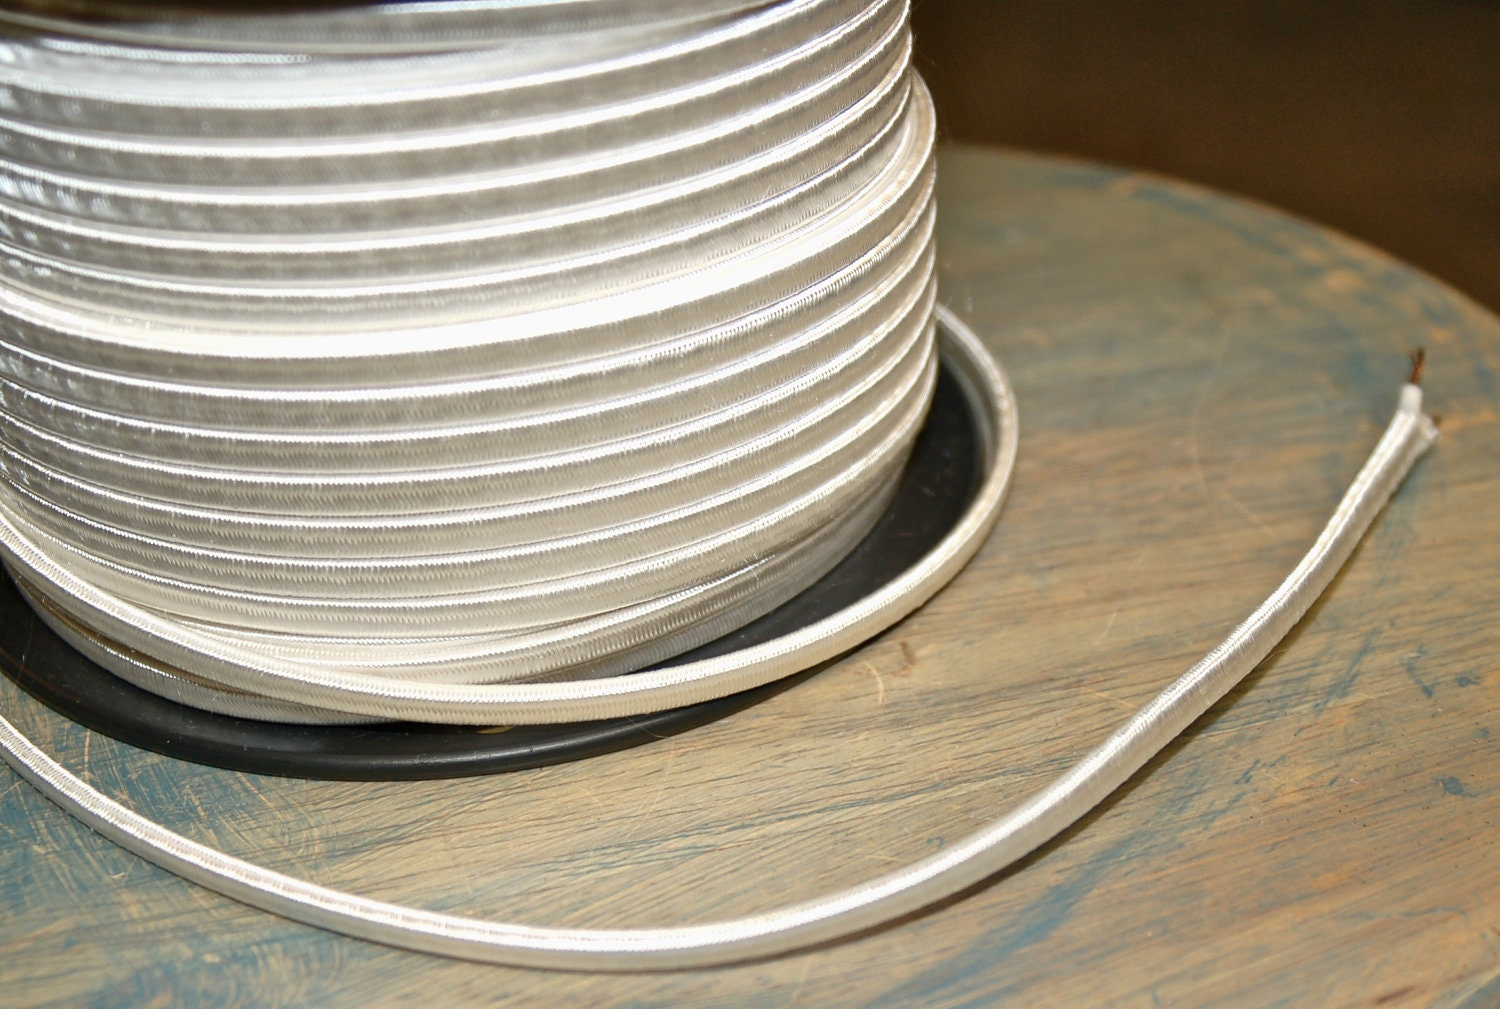 6 Feet: White 2-Wire Cloth Covered Cord Vintage Style Cloth